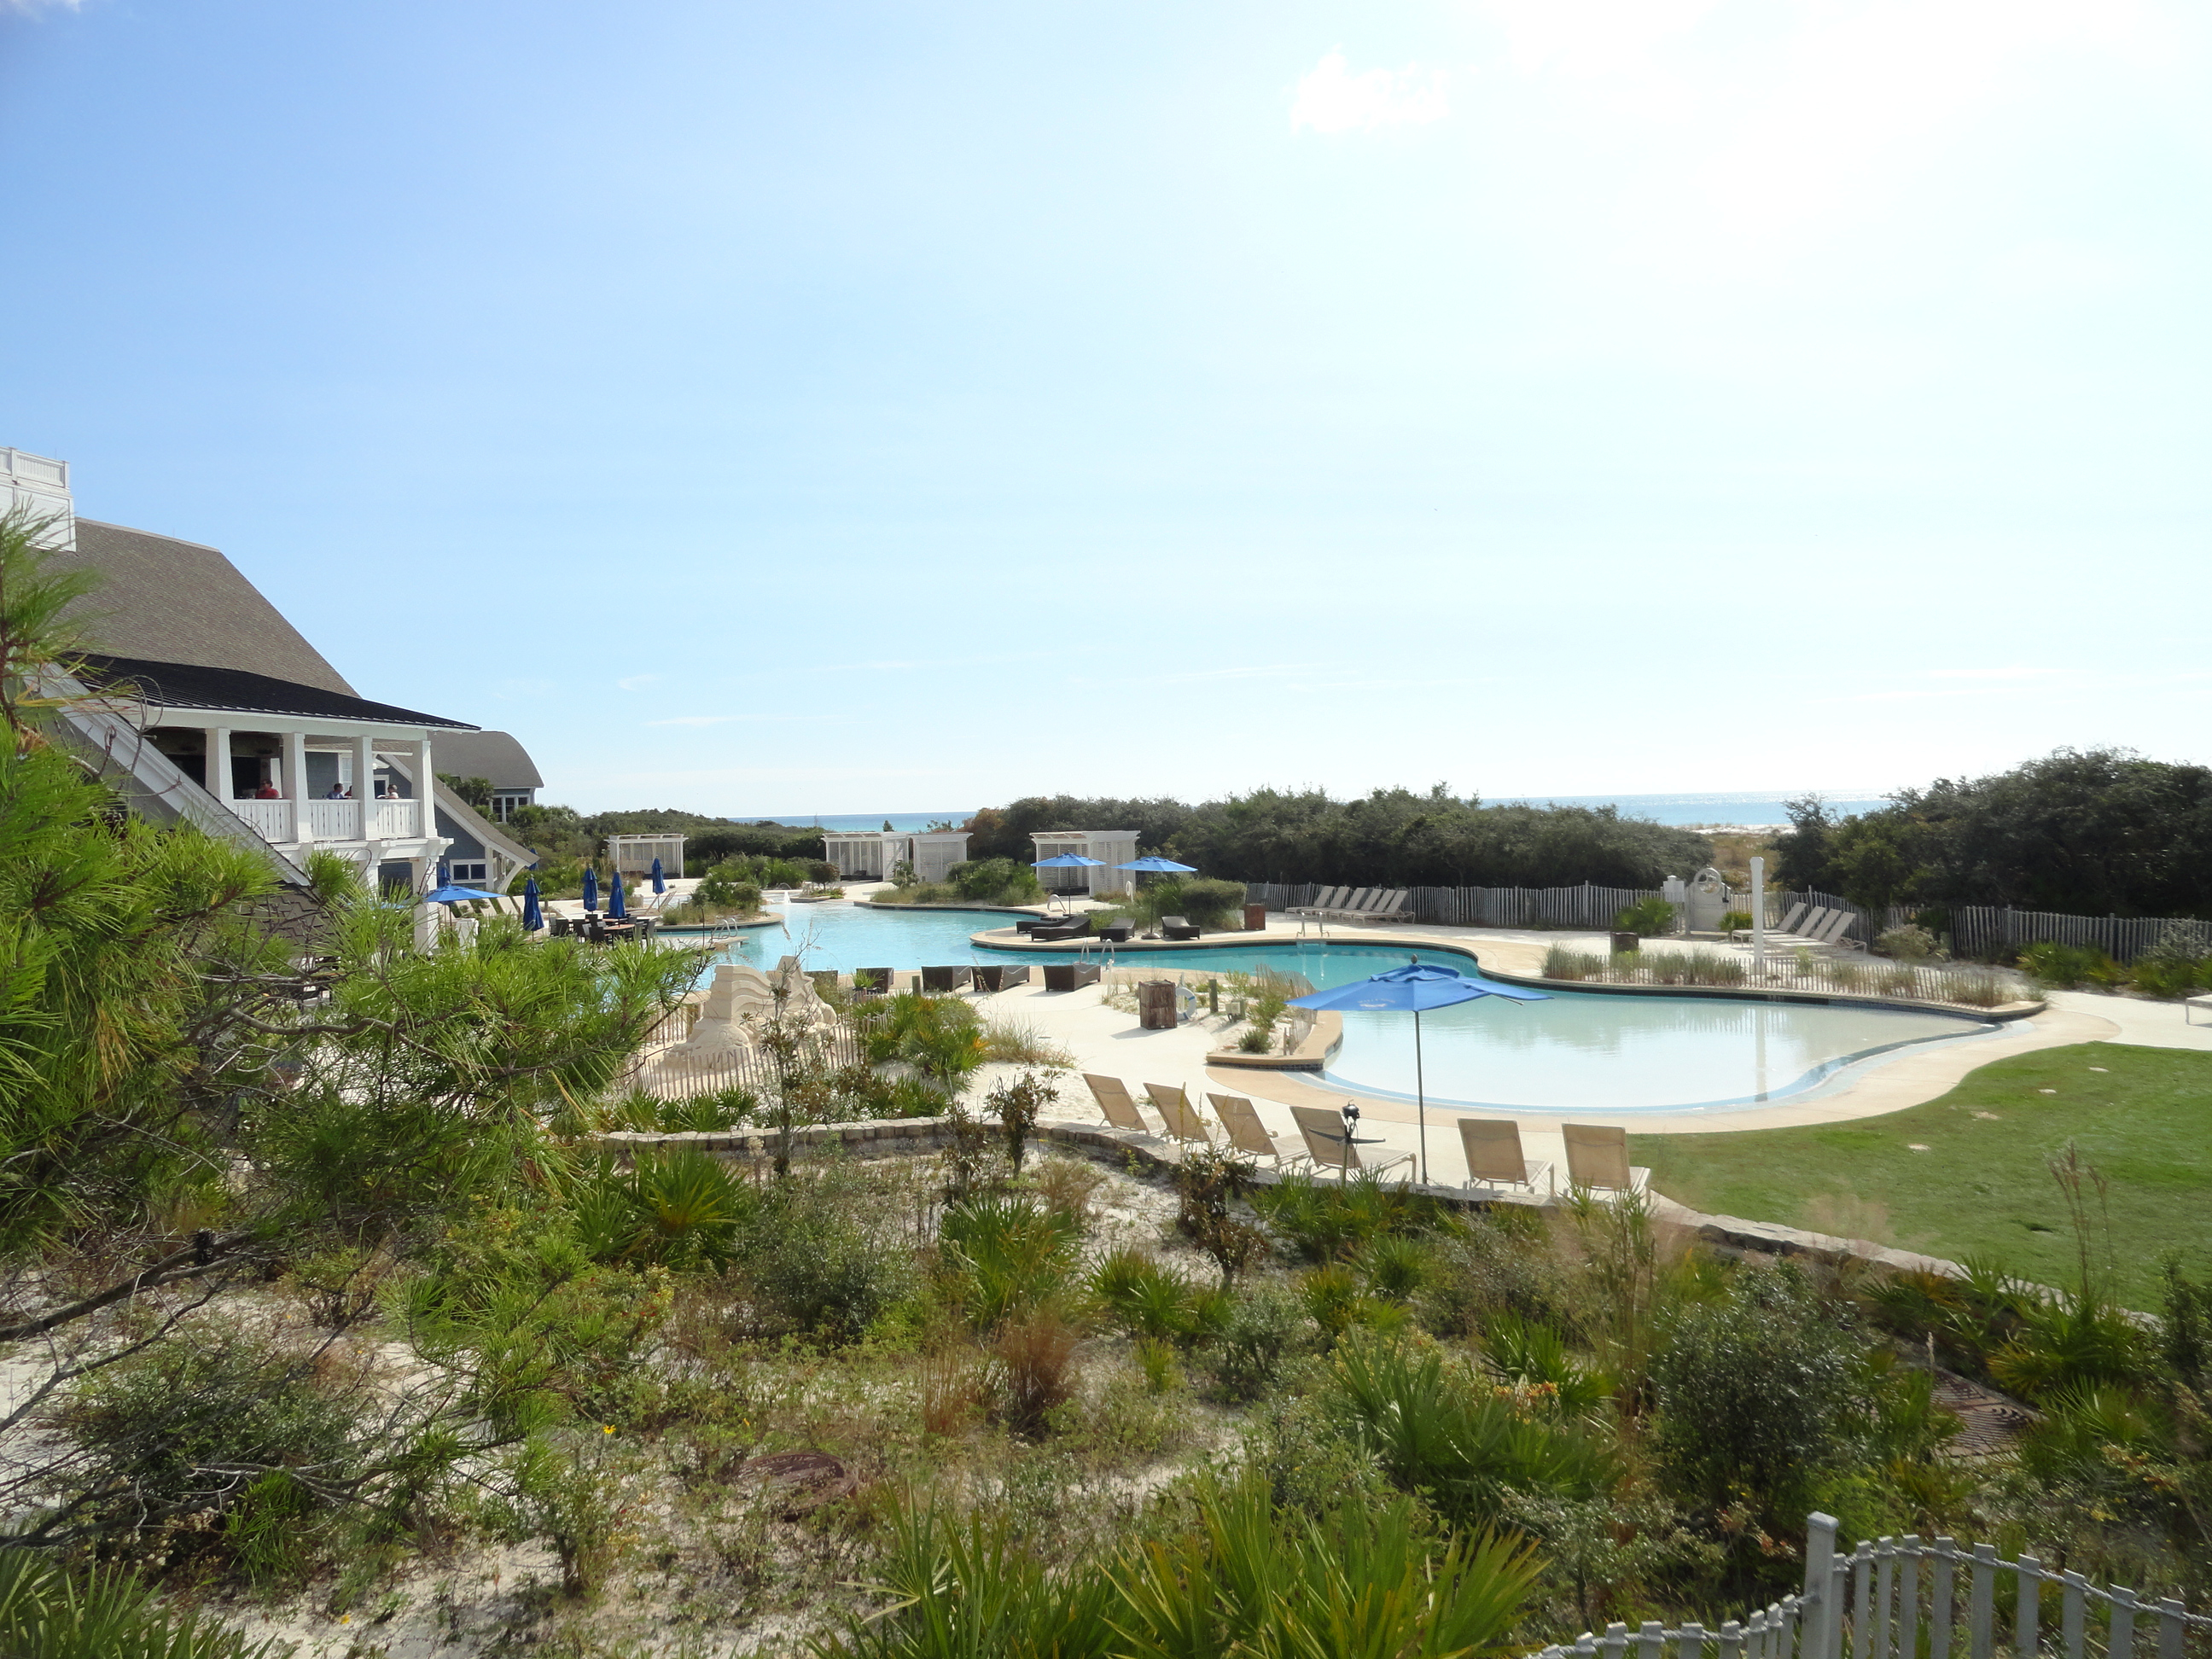 Watersound Beach Club - Homes On 30A ® 850-660-1830 - Watersound Beach Florida Map